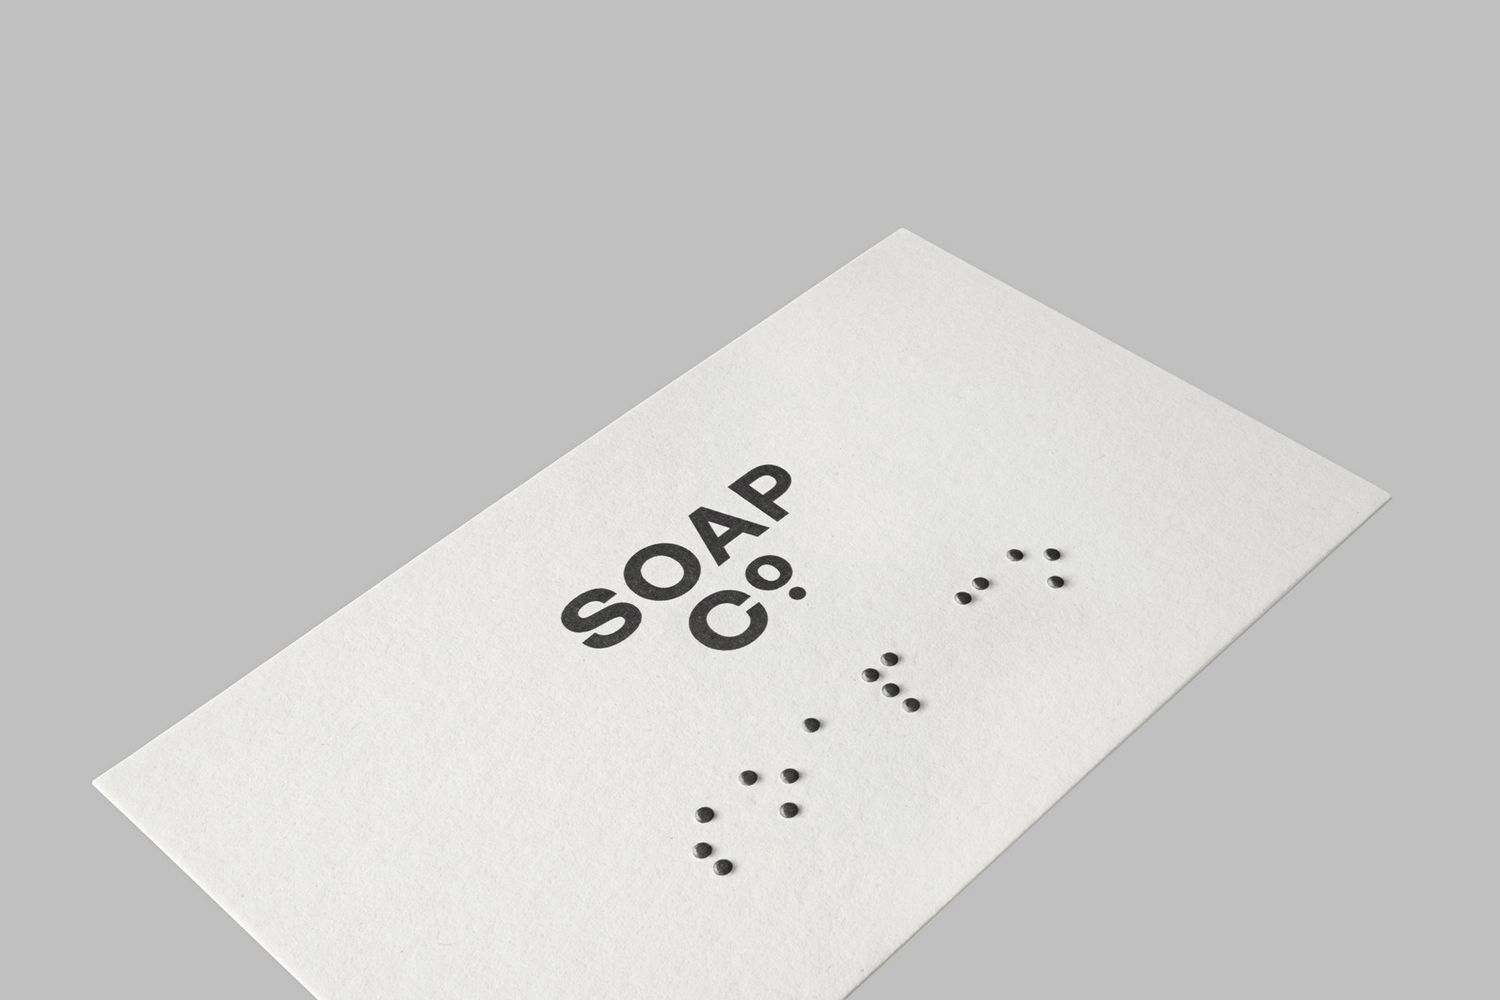 New Brand Identity For Soap Co By Paul Belford Bp O Business Card Design Inspiration Soap Business Card Design